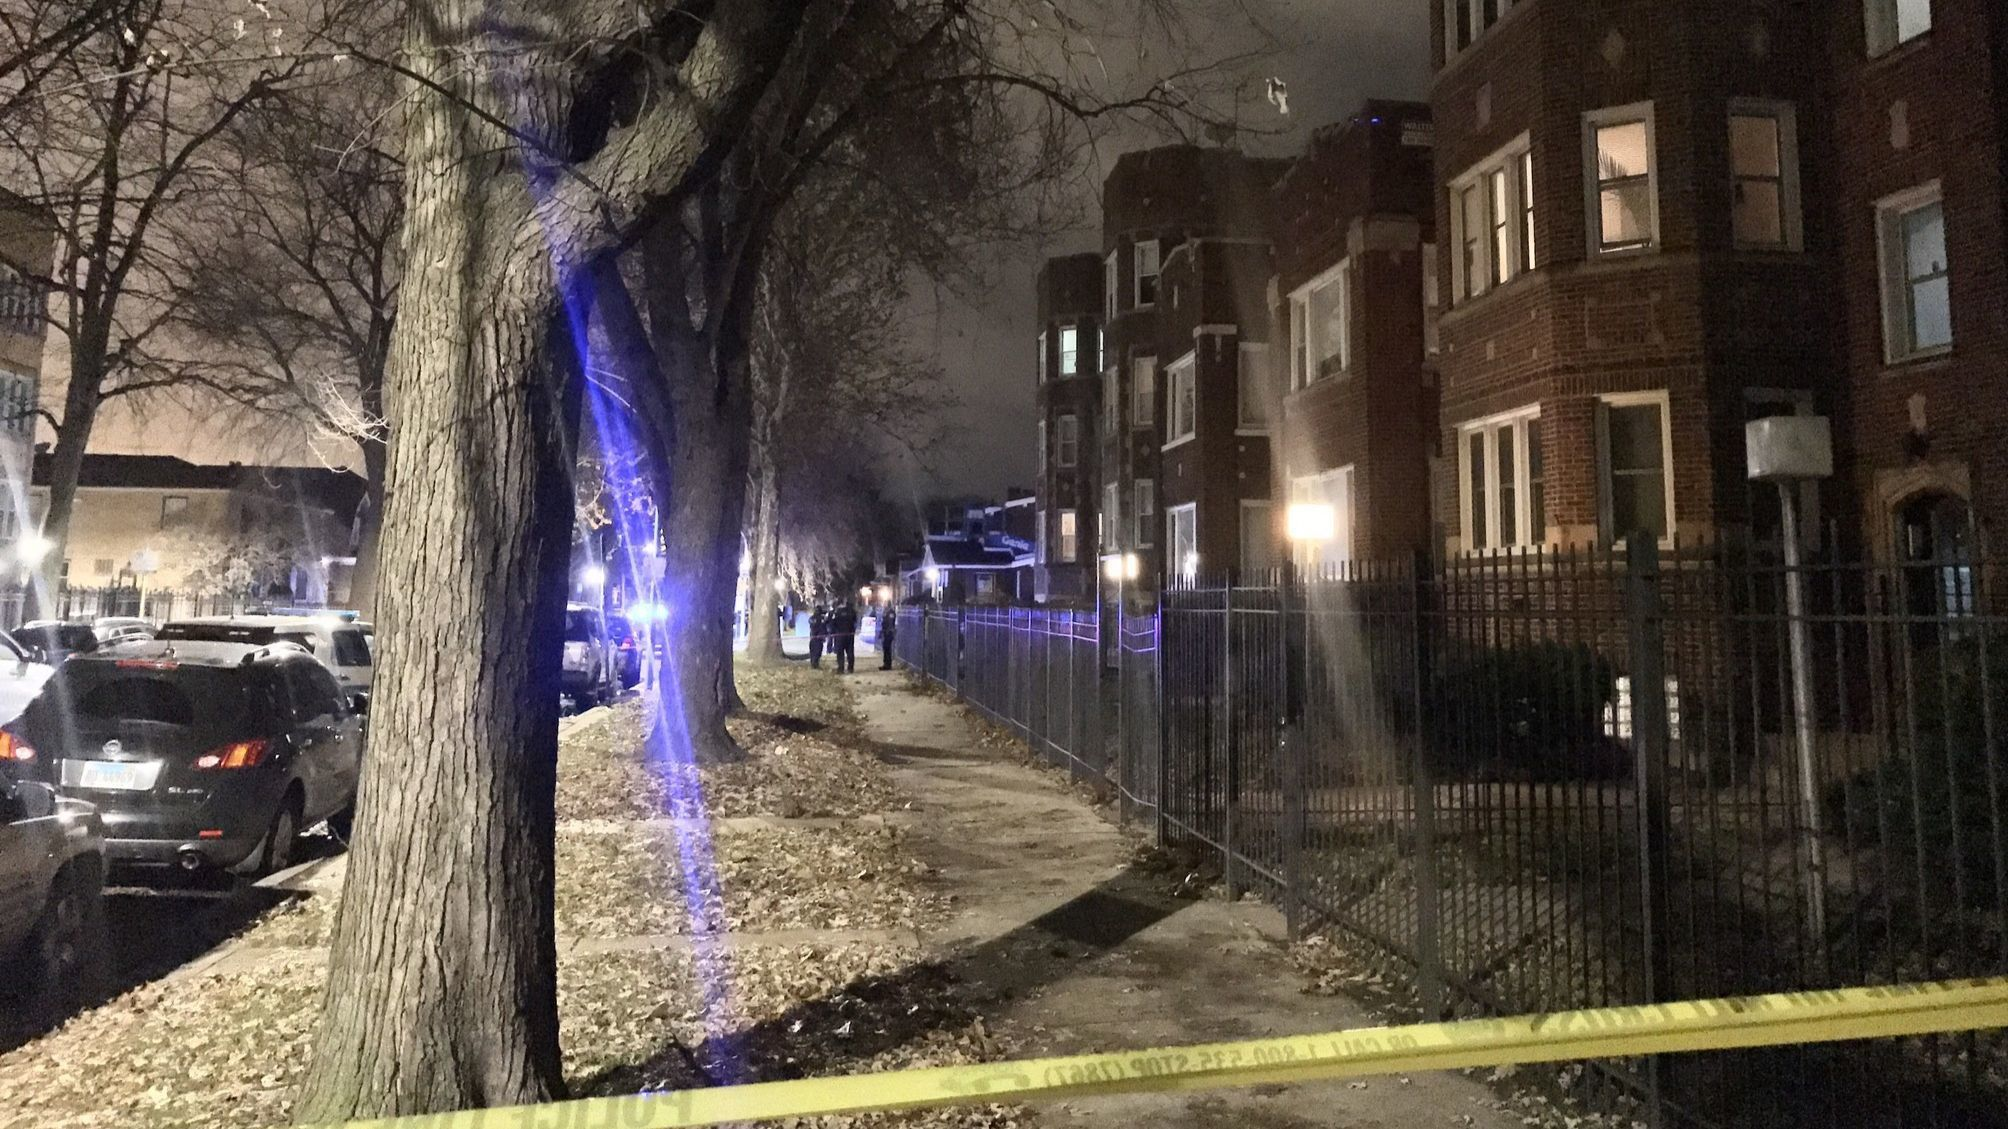 Couple die in murder-suicide in South Shore: 'Why, why, why?'